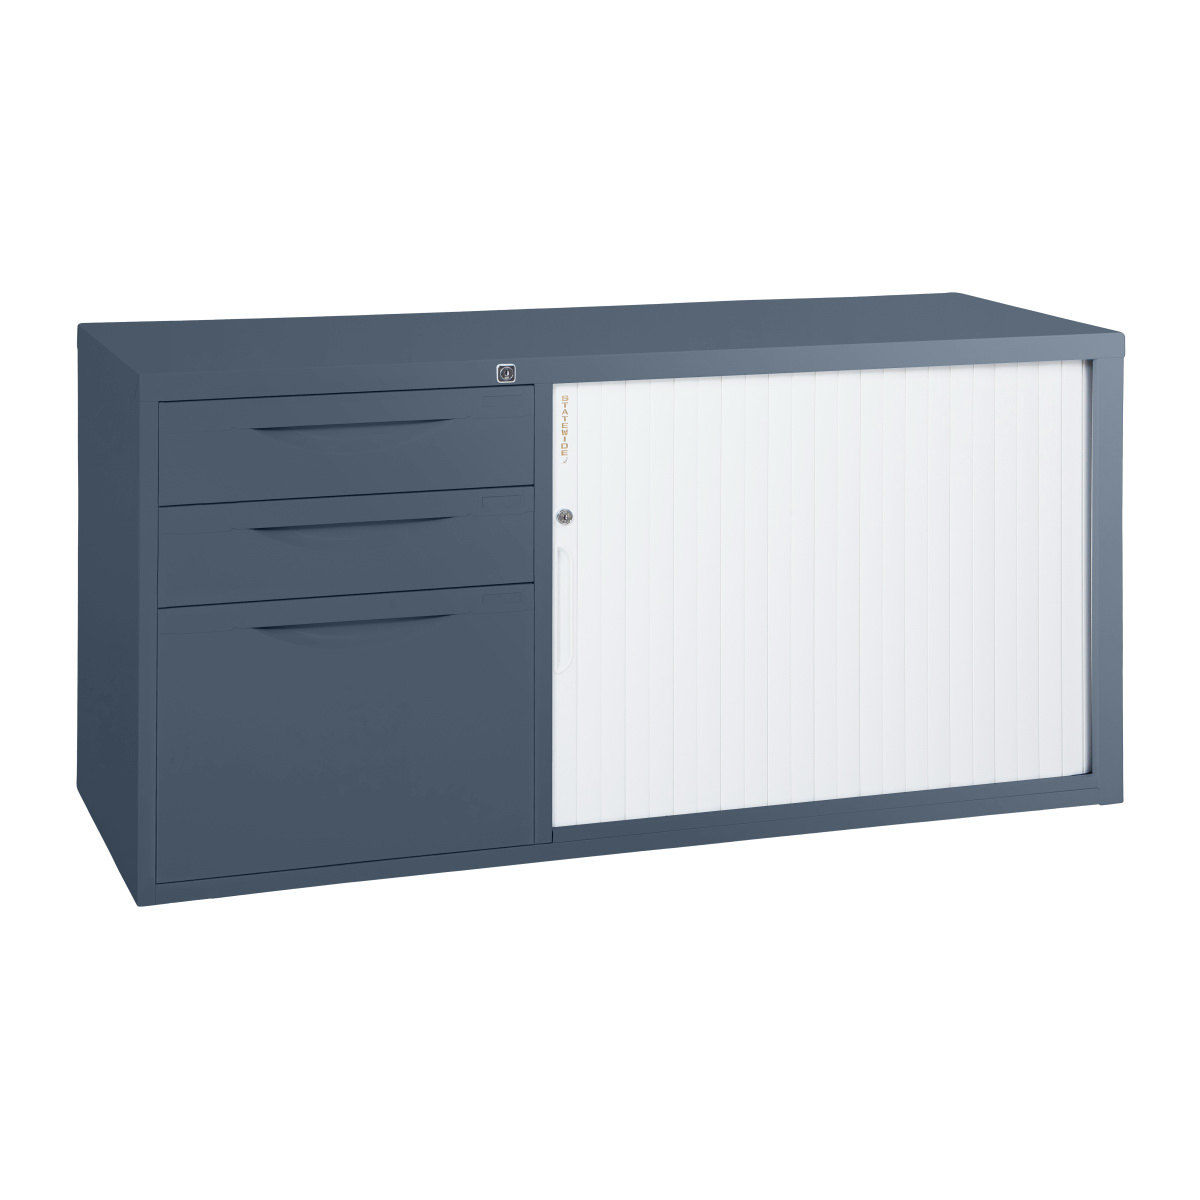 Mobile Caddy with Tambour Door  sc 1 st  Statewide Office Furniture & Mobile Caddy with Tambour Door - Statewide Office Furniture